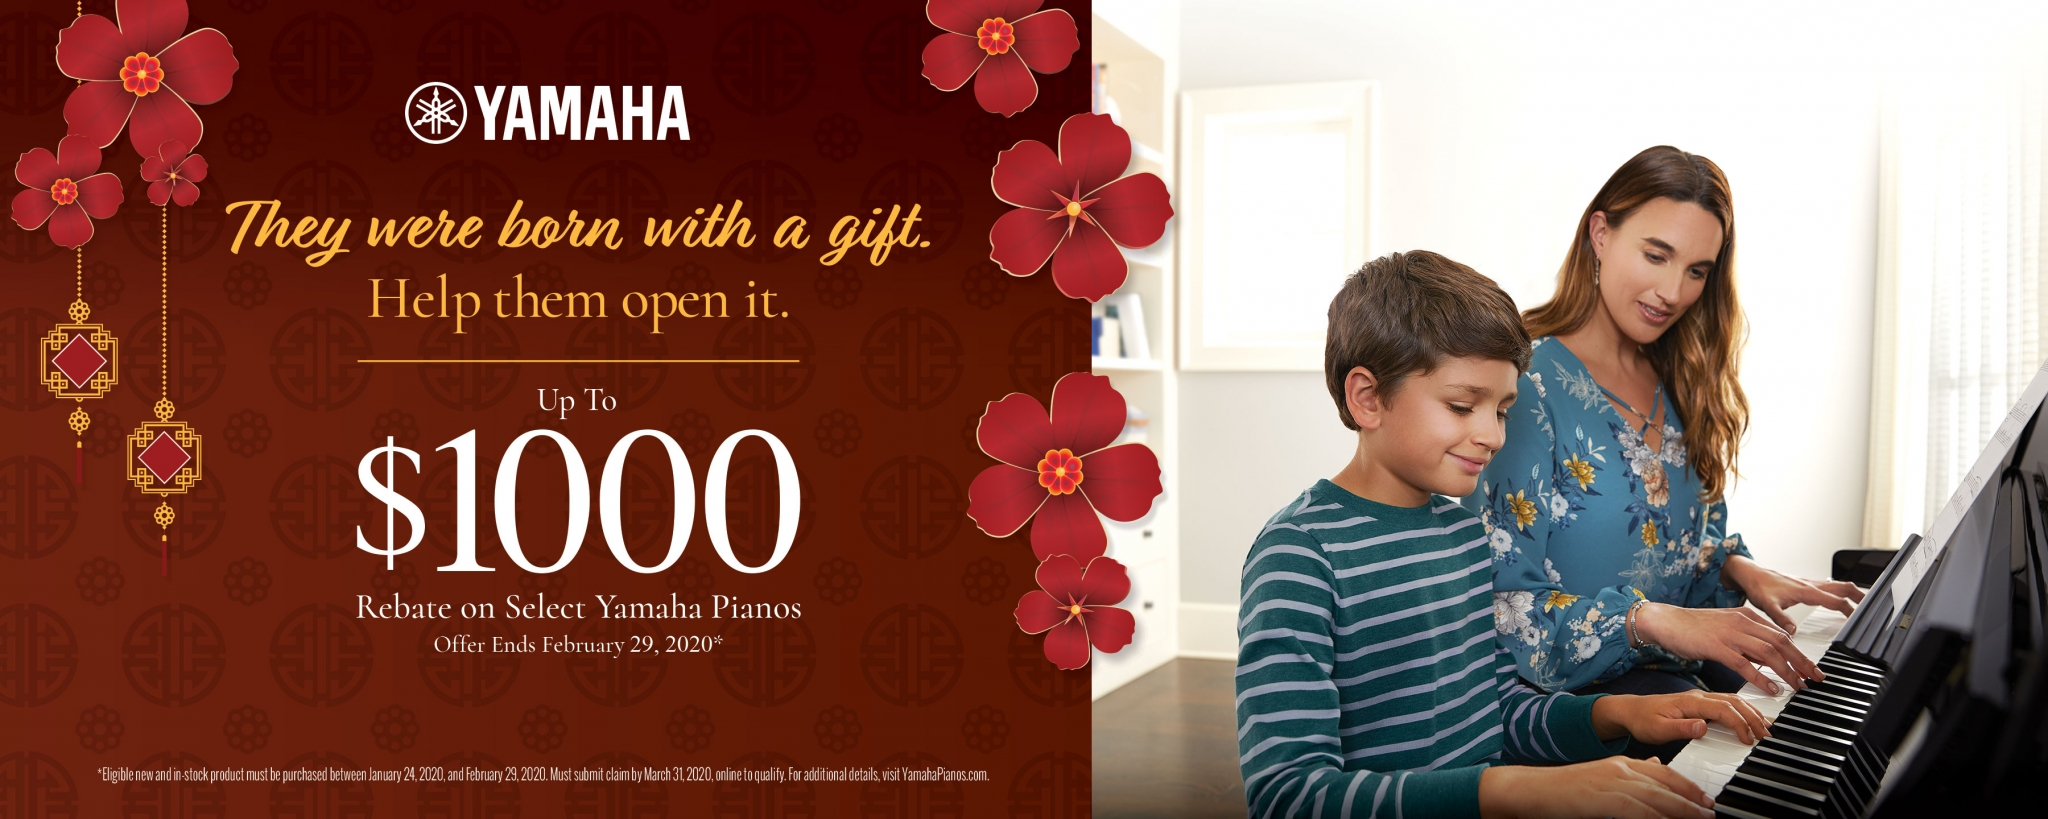 Yamaha They were born with a gift help them open it. Up to $1,000 REbate on Select Yamaha Pianos . Offer ends Feb. 29, 2020